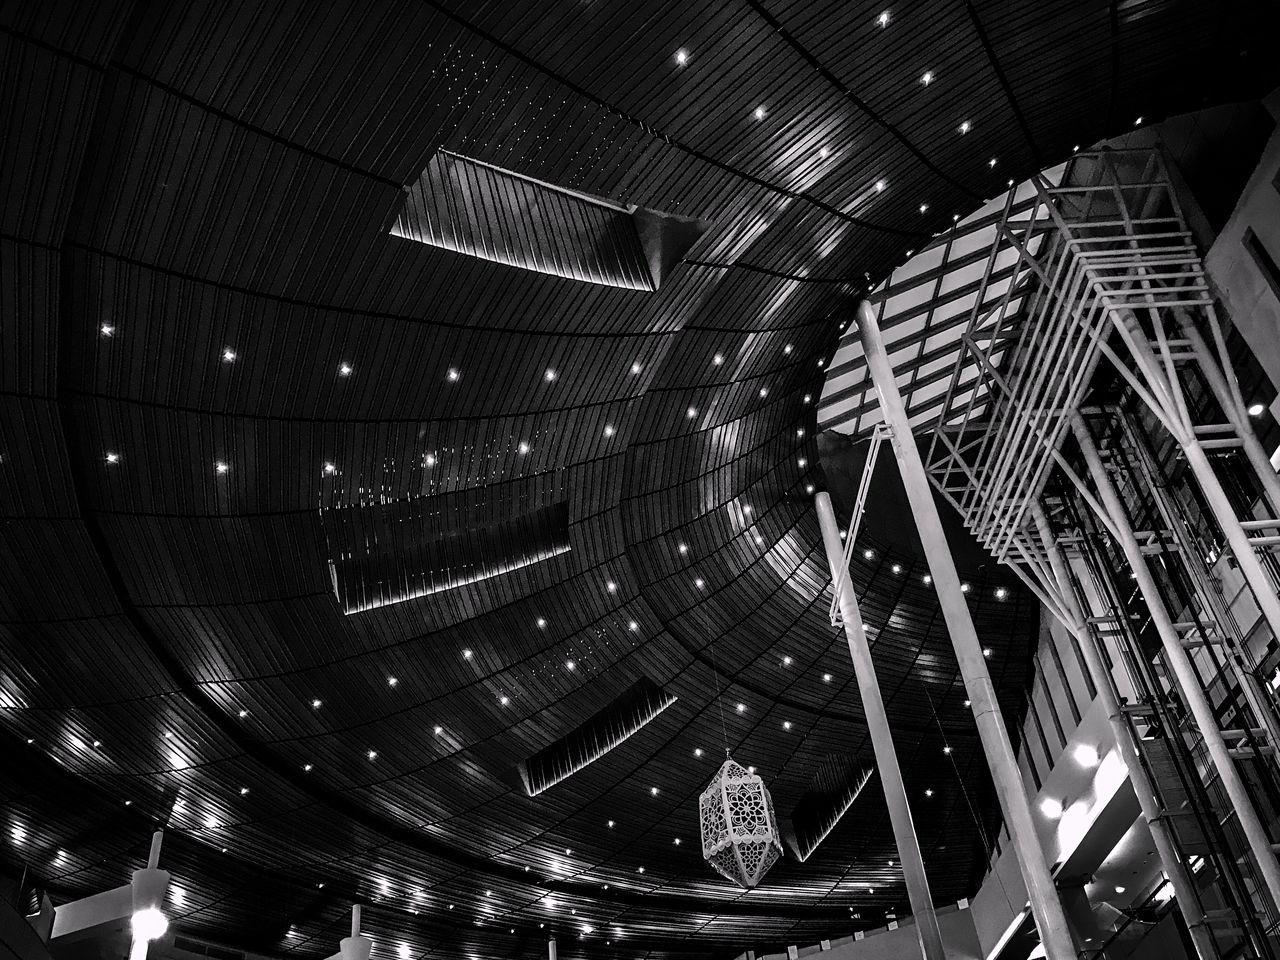 illuminated, indoors, architecture, night, built structure, modern, no people, city